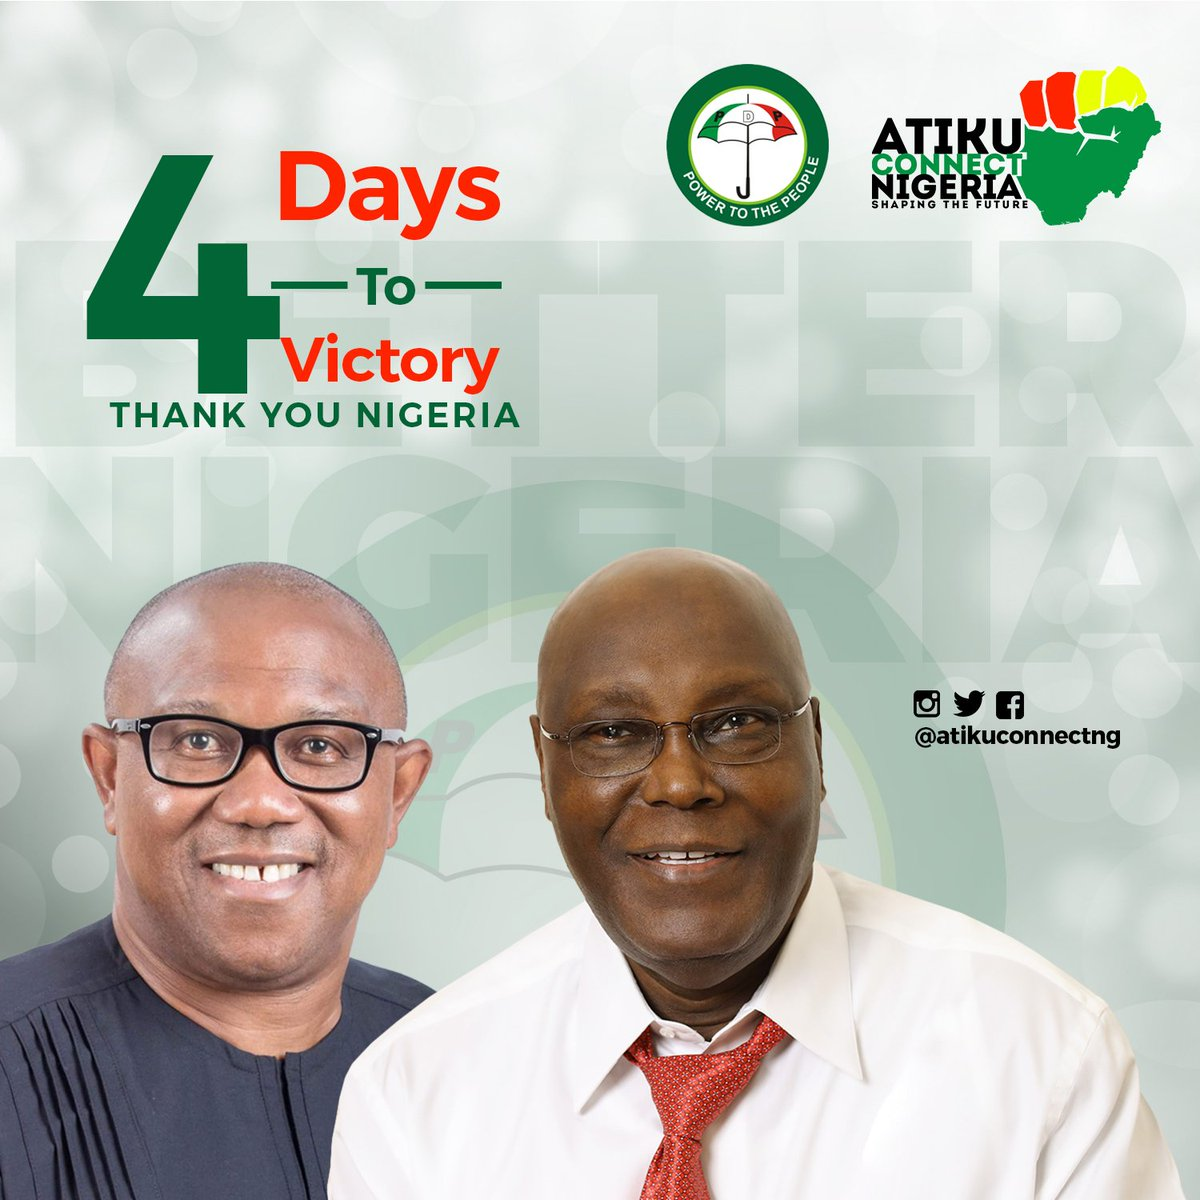 Its Just 4days to Vote to Victory for all Nigerians. 4days to proclaim to a #BetterNigeria #AtikuObi2019 #Votepdp #AtikuConnect @atiku @SpokesManAtiku<br>http://pic.twitter.com/Cebl1H1hI2